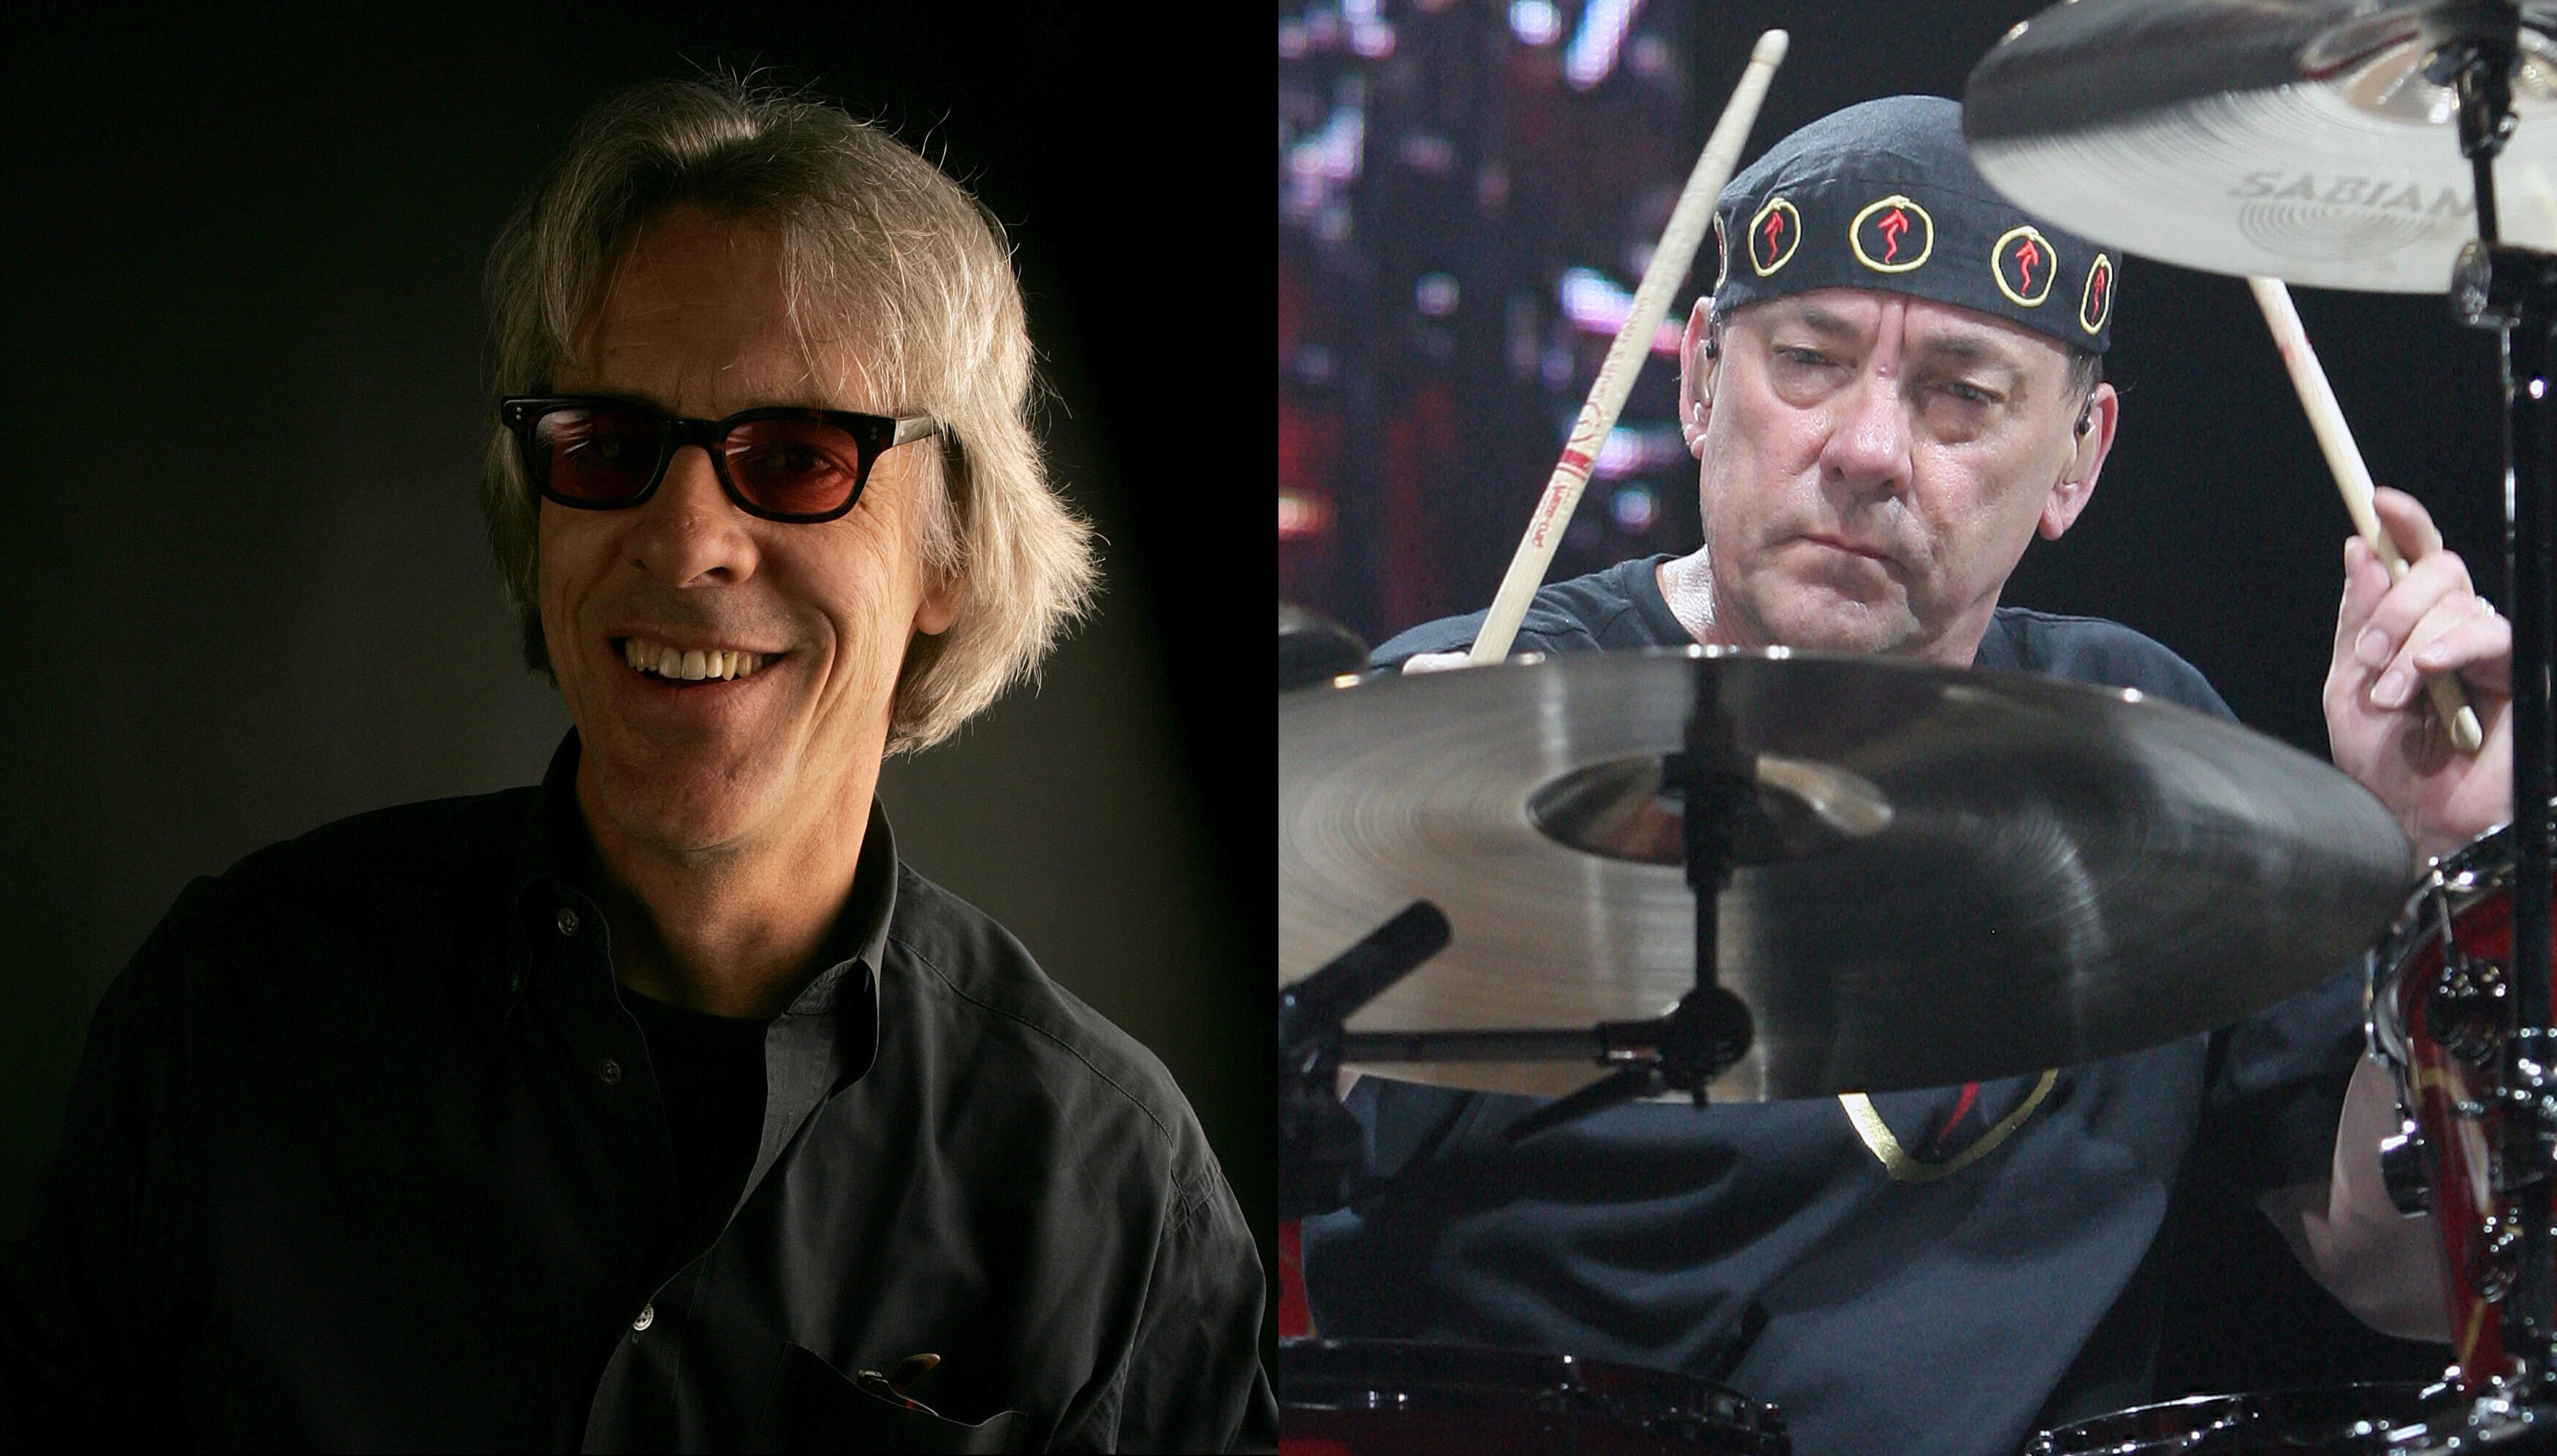 Stewart Copeland Explains His Mixed Reaction To Neil Peart's Death